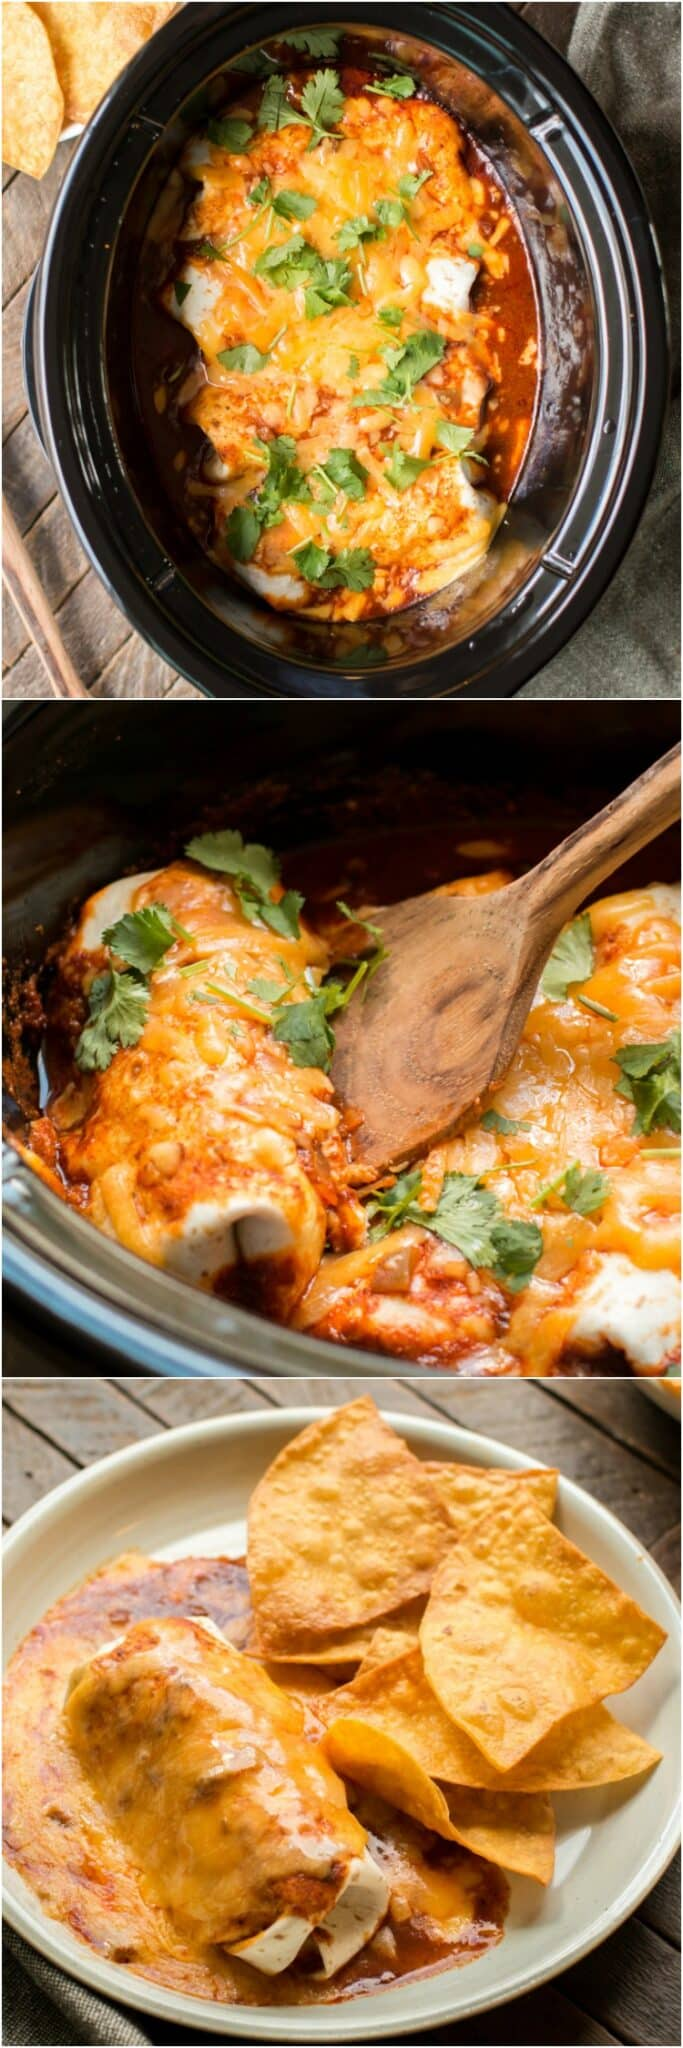 Slow Cooker Smothered Beef Burritos